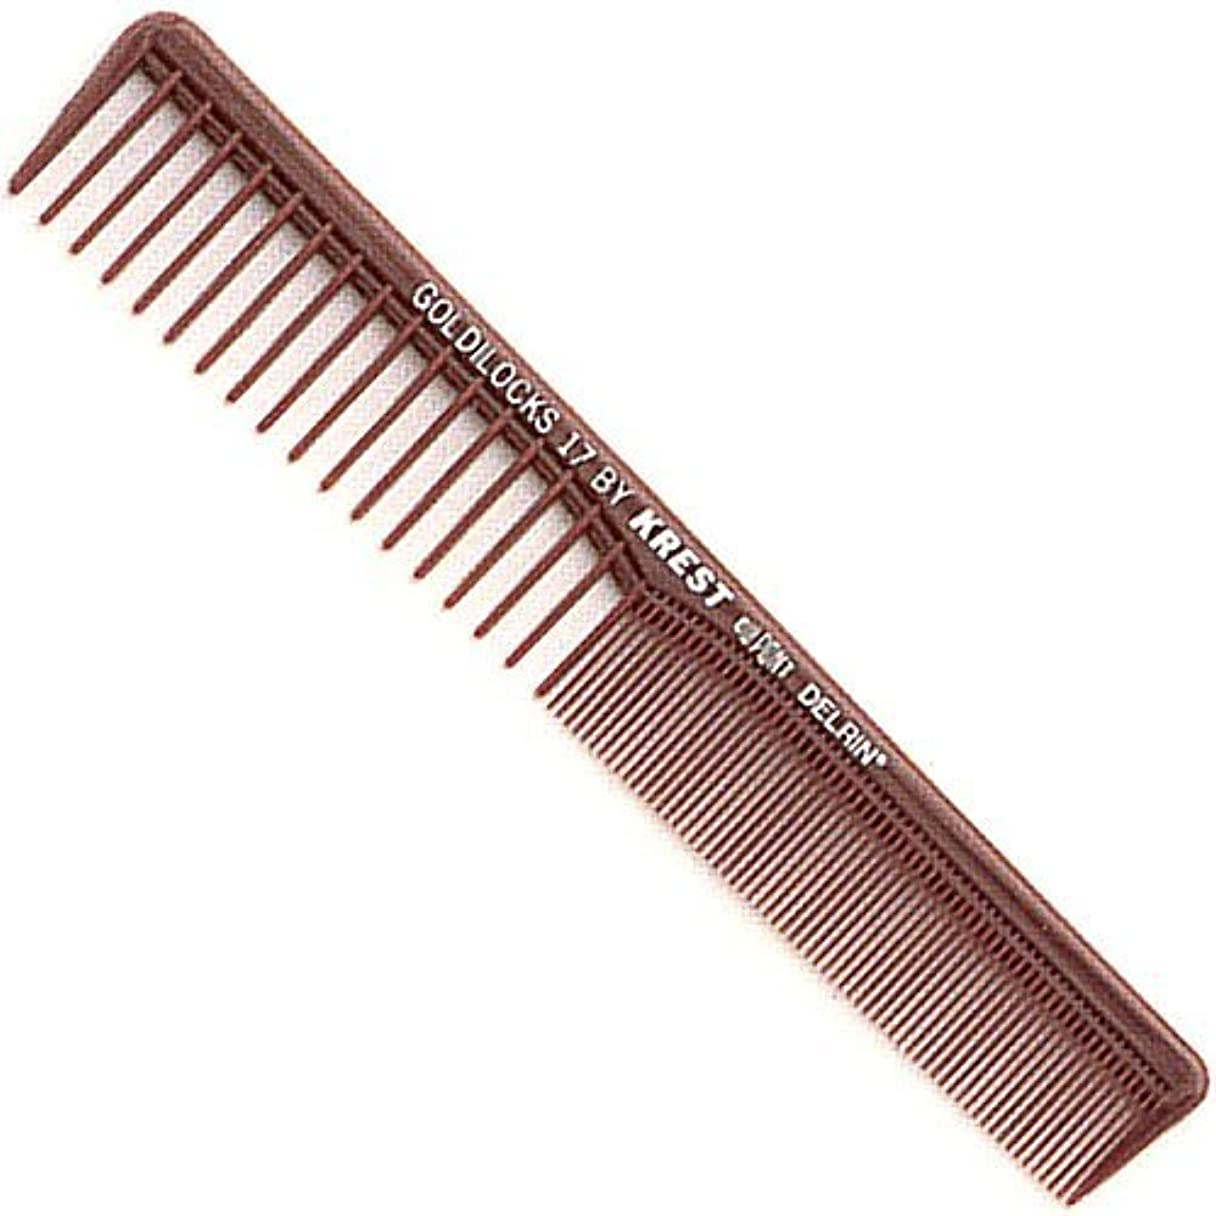 実施する麻痺温度Krest Combs Goldilocks Space Tooth Fine Tooth Styler Comb 7